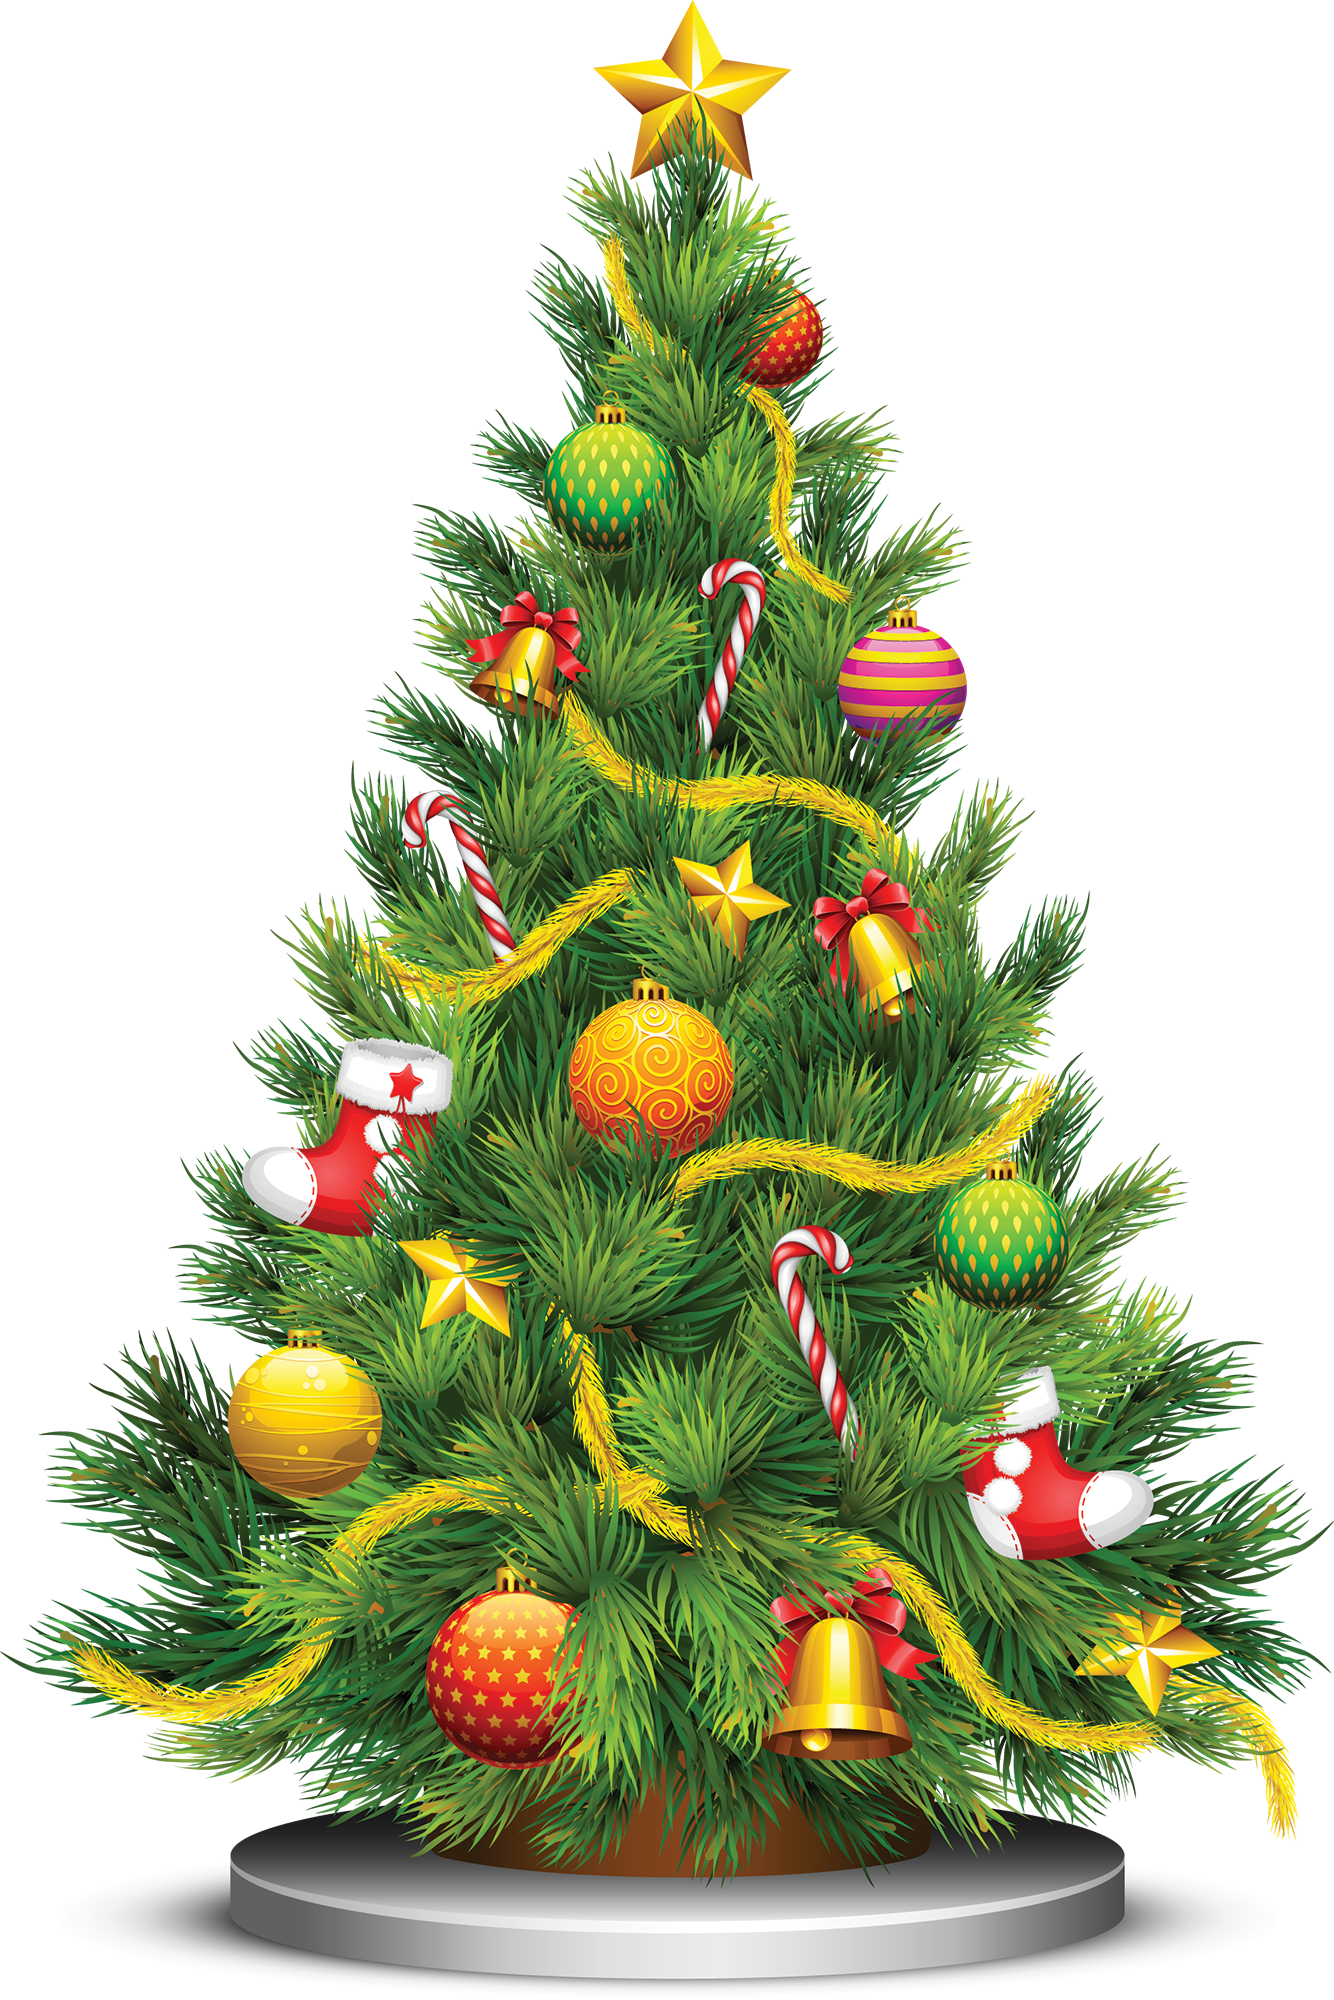 Christmas pageant clipart clip art library download Pin by Dara Tata on КЛИПАРТ - новогодний | Pinterest | Christmas ... clip art library download